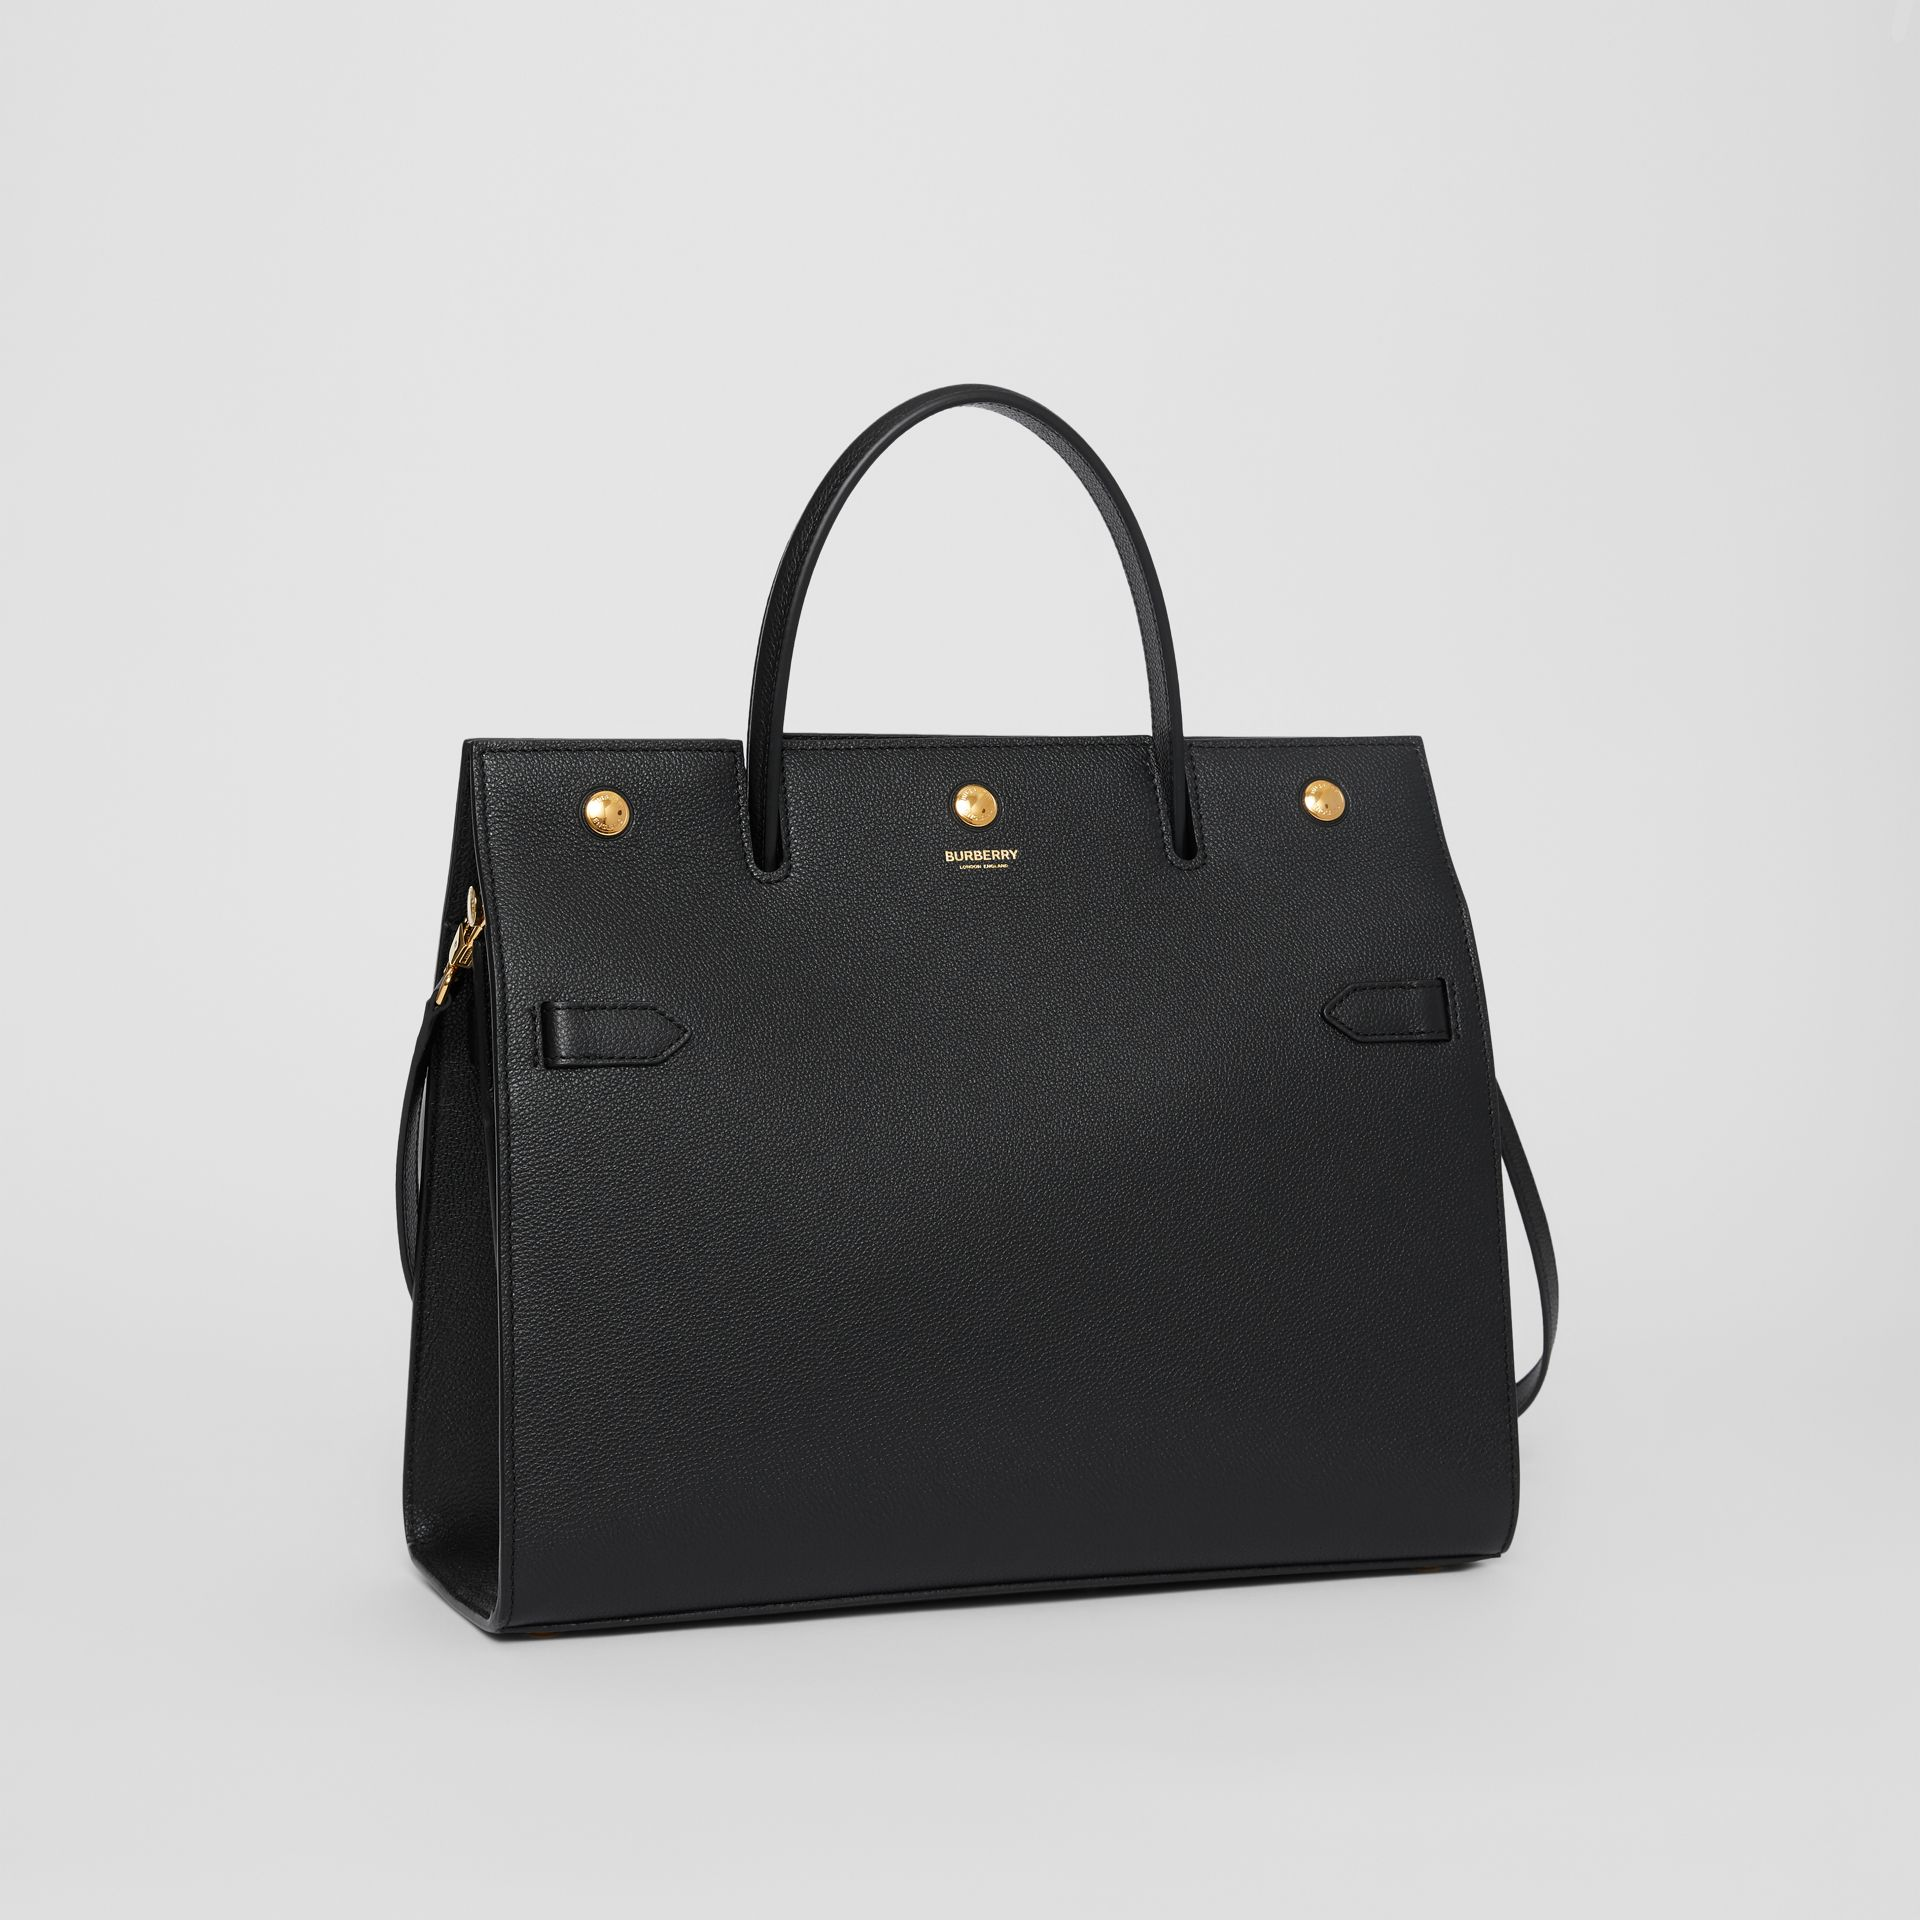 Medium Leather Title Bag in Black - Women | Burberry - gallery image 4